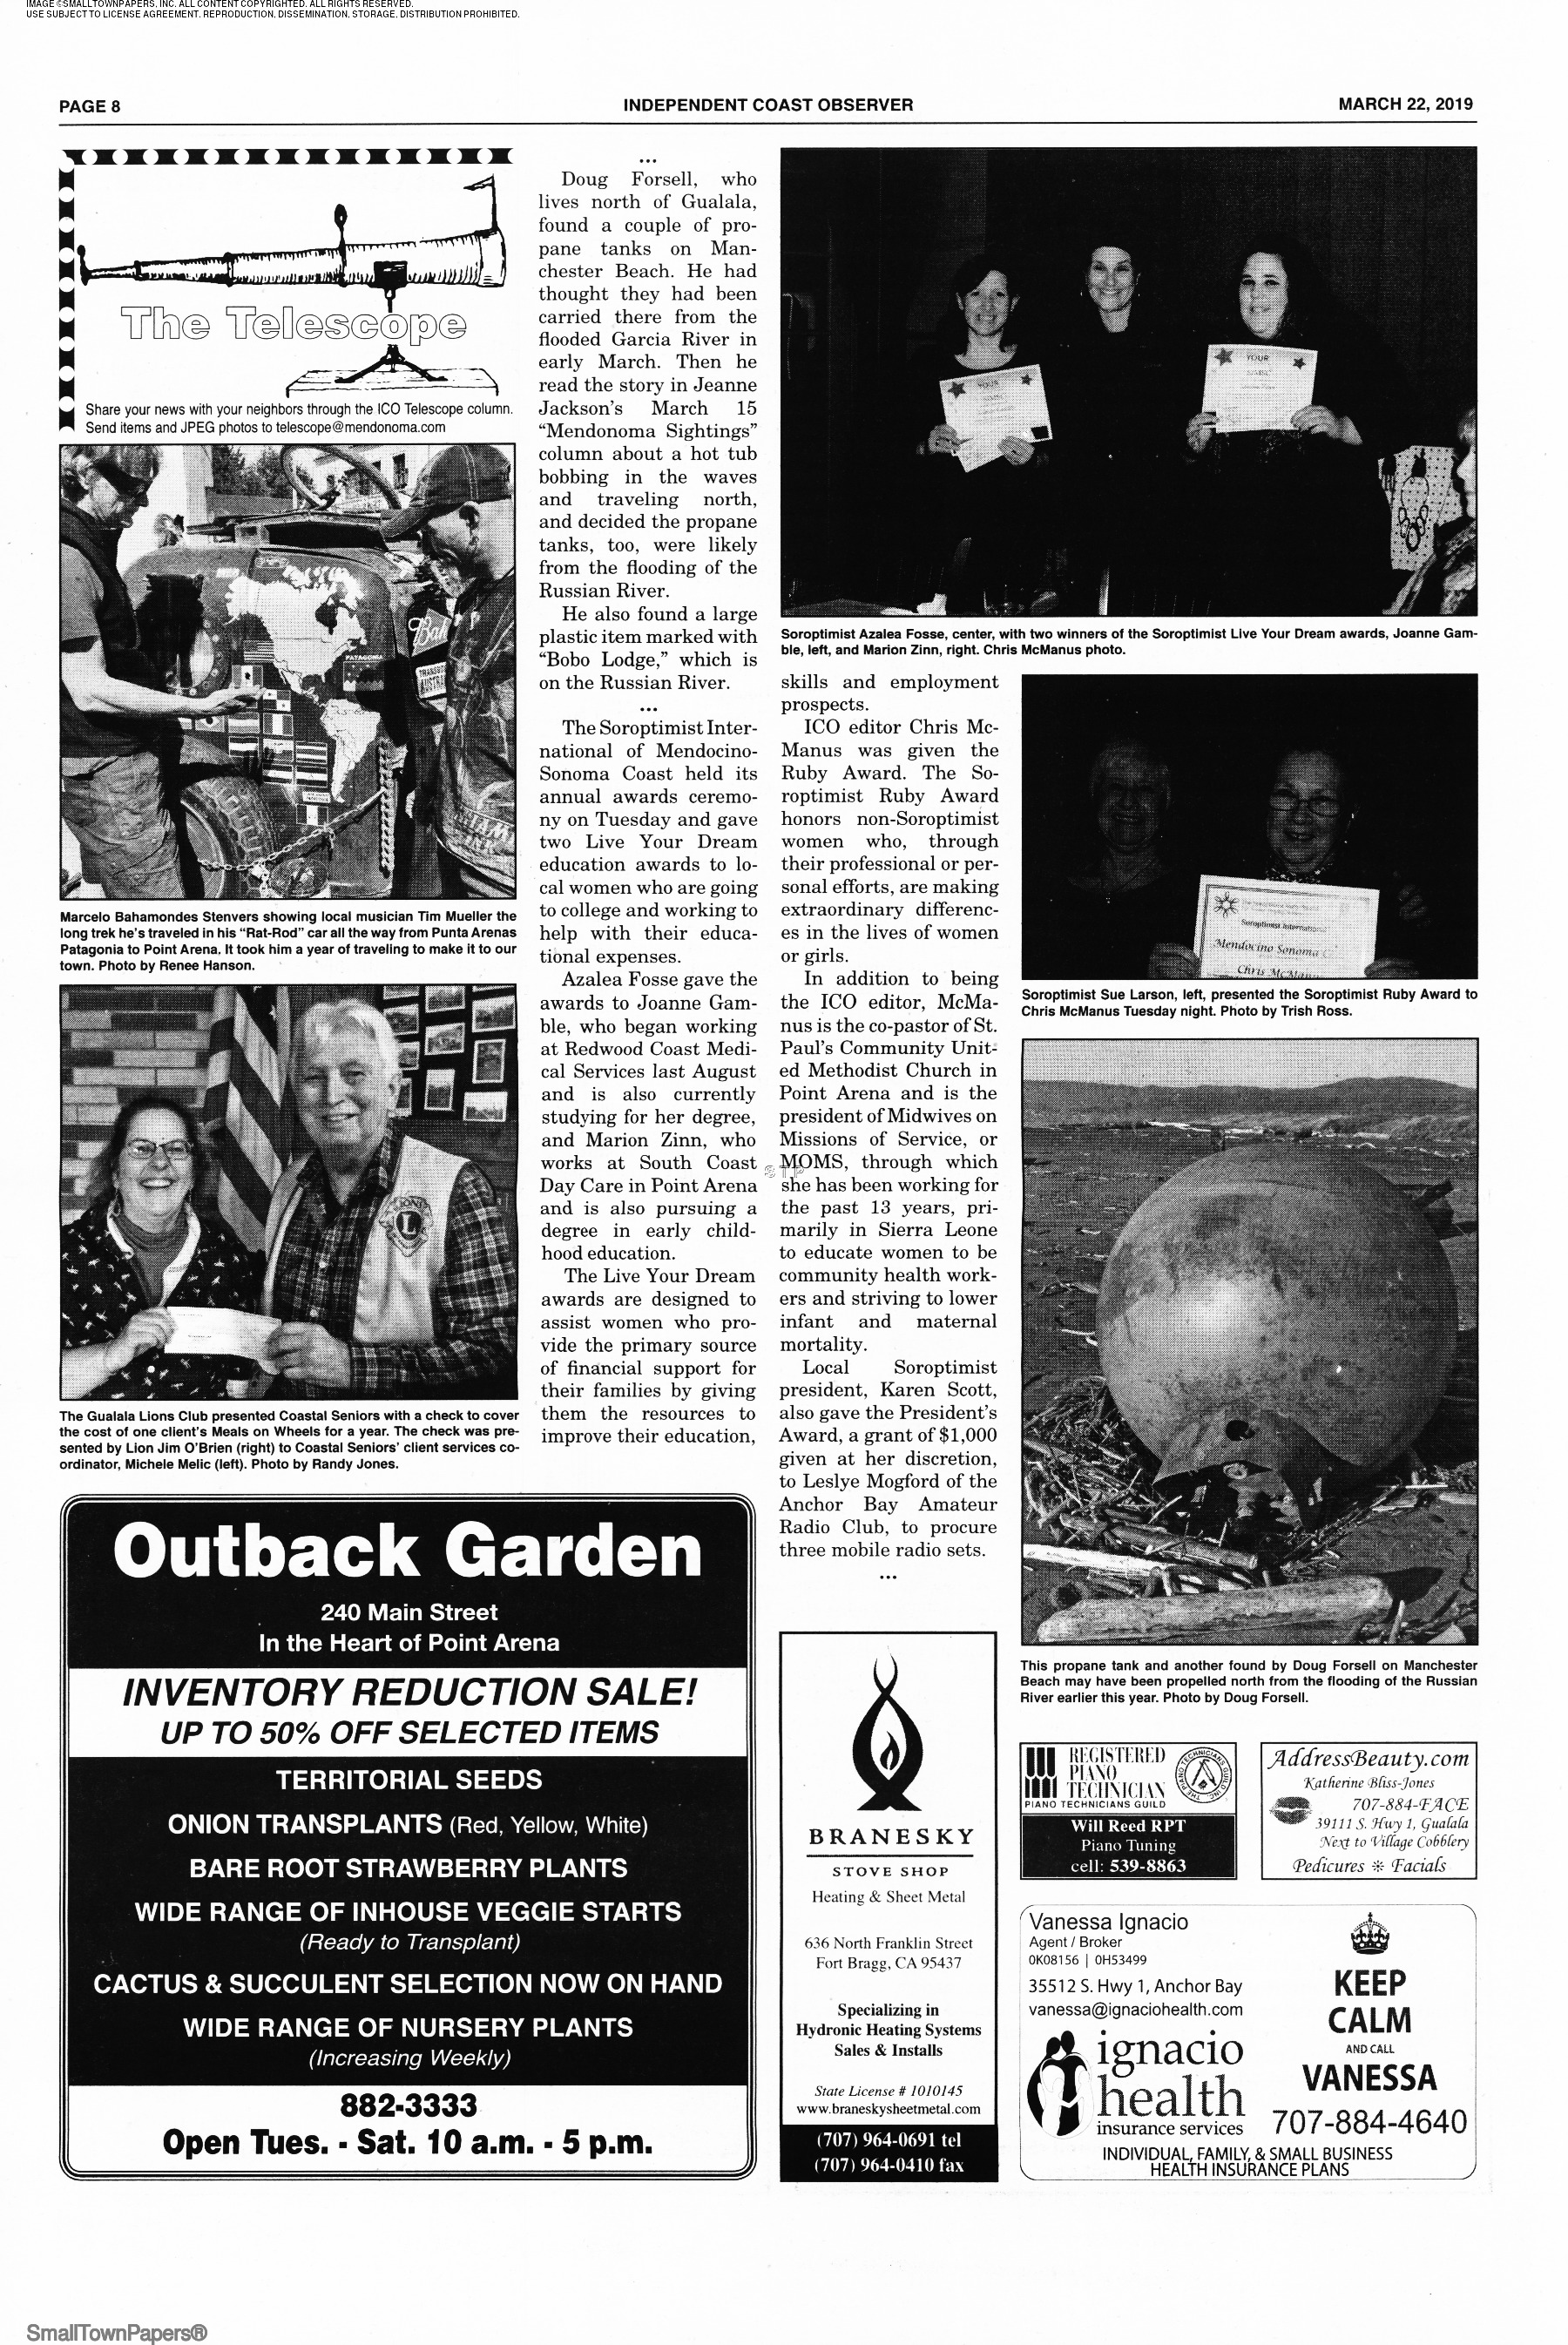 Independent Coast Observer March 22 2019 Page 8